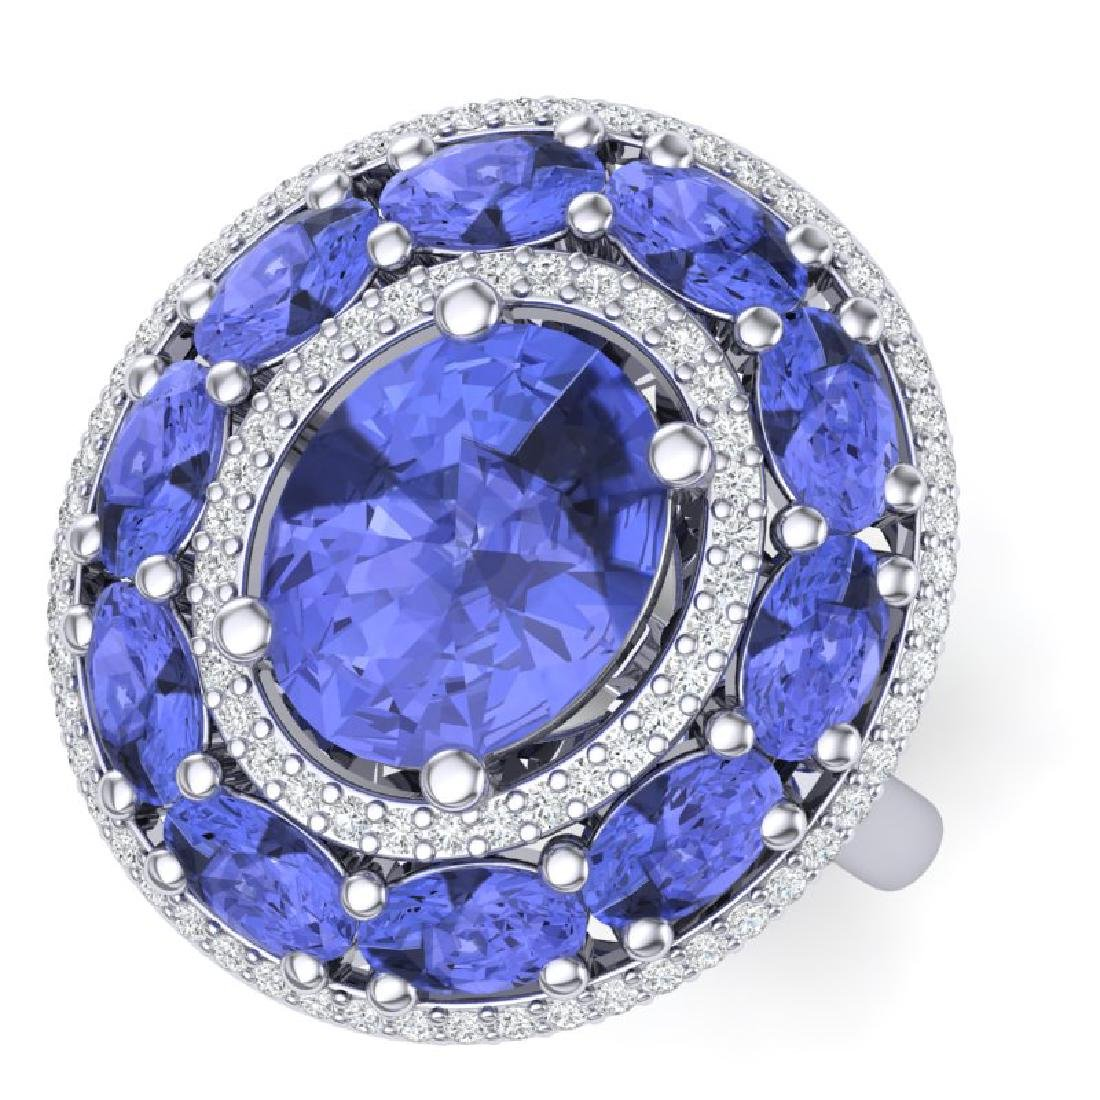 8.49 CTW Royalty Tanzanite & VS Diamond Ring 18K White